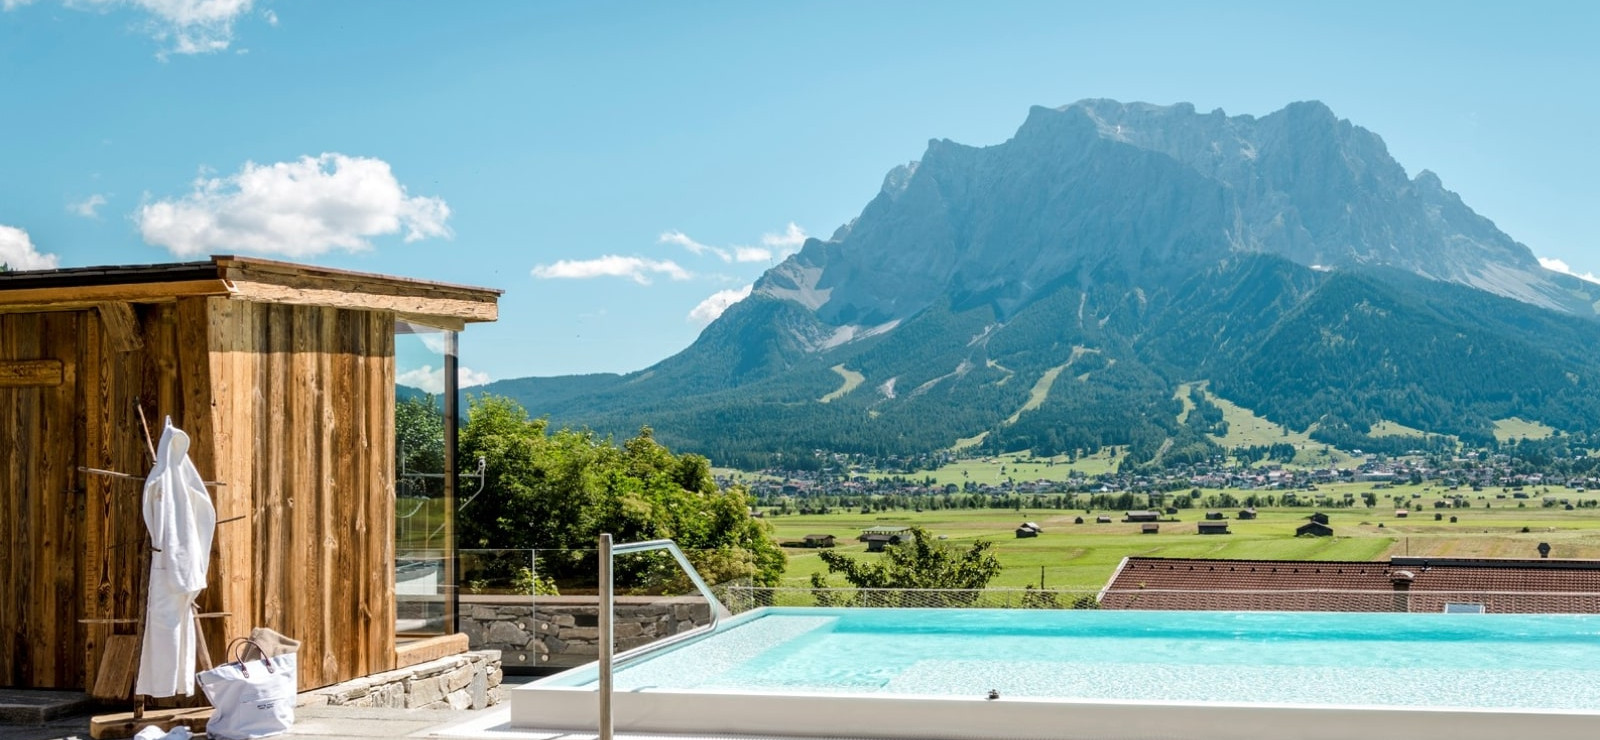 Wellnesshotel Alpine Luxury Hotel Post Lermoos****s | Lermoos